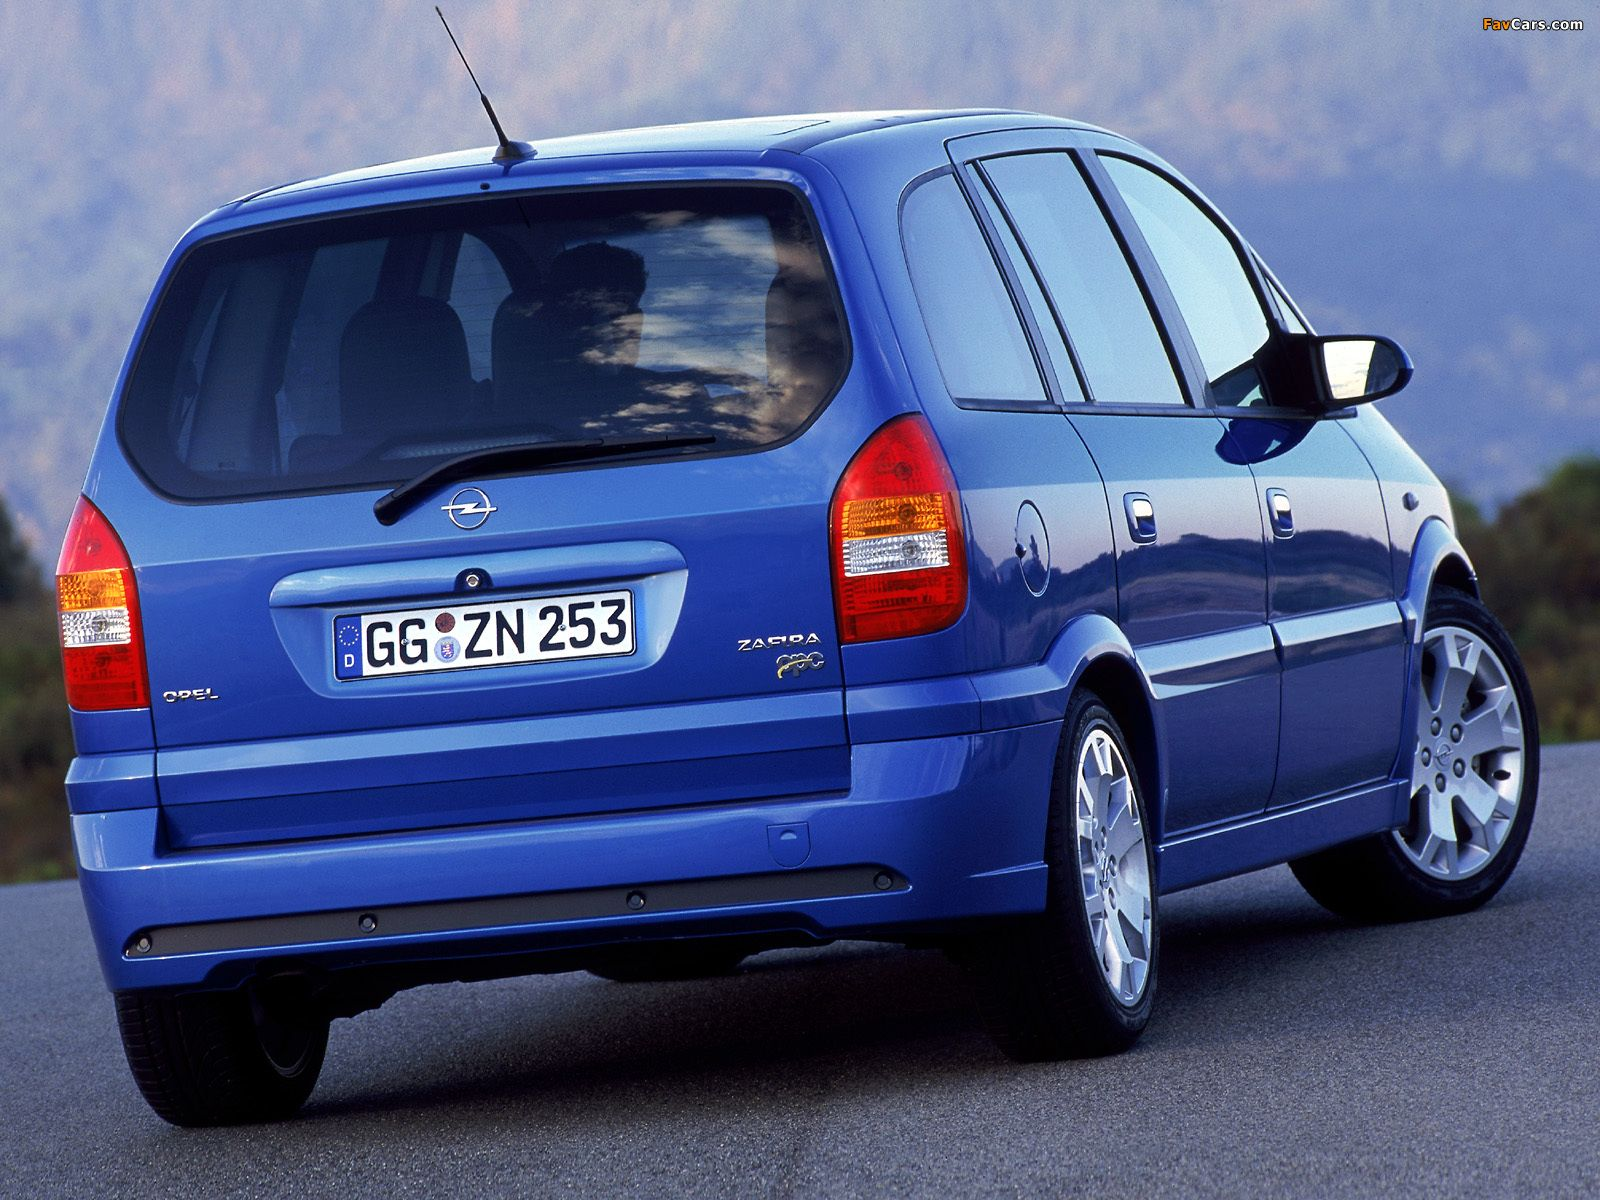 Pictures Of Opel Zafira Opc A 2001 05 Concept Cars Hd Wallpaper Car Tuning